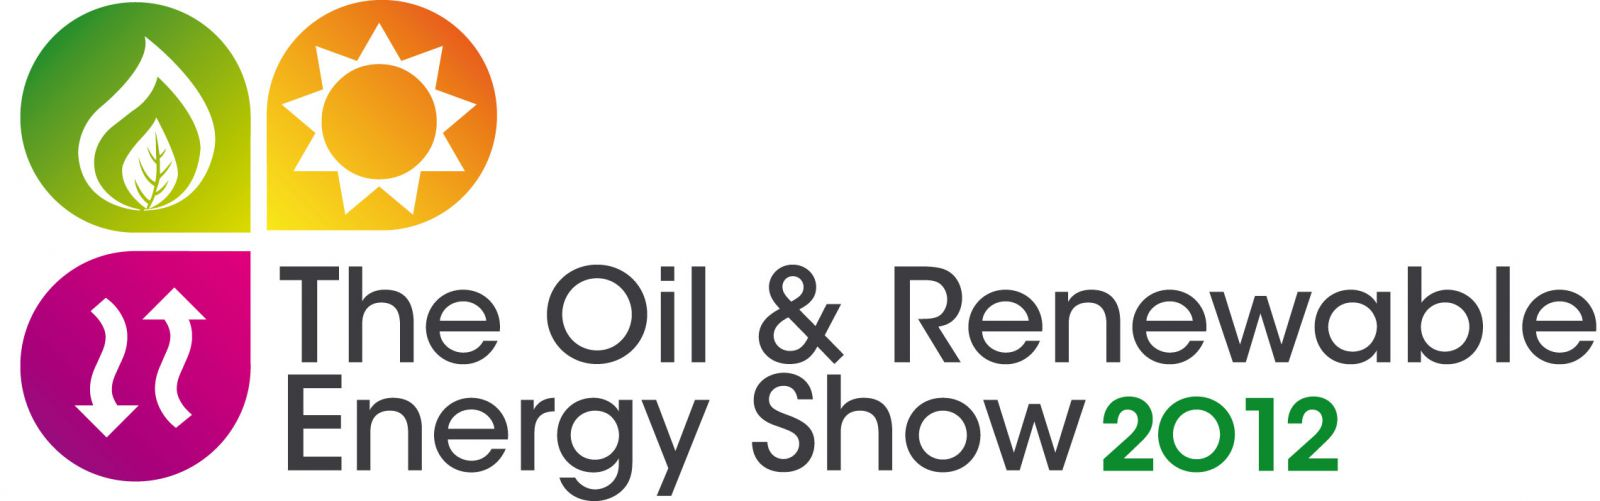 Oil & Renewable Show